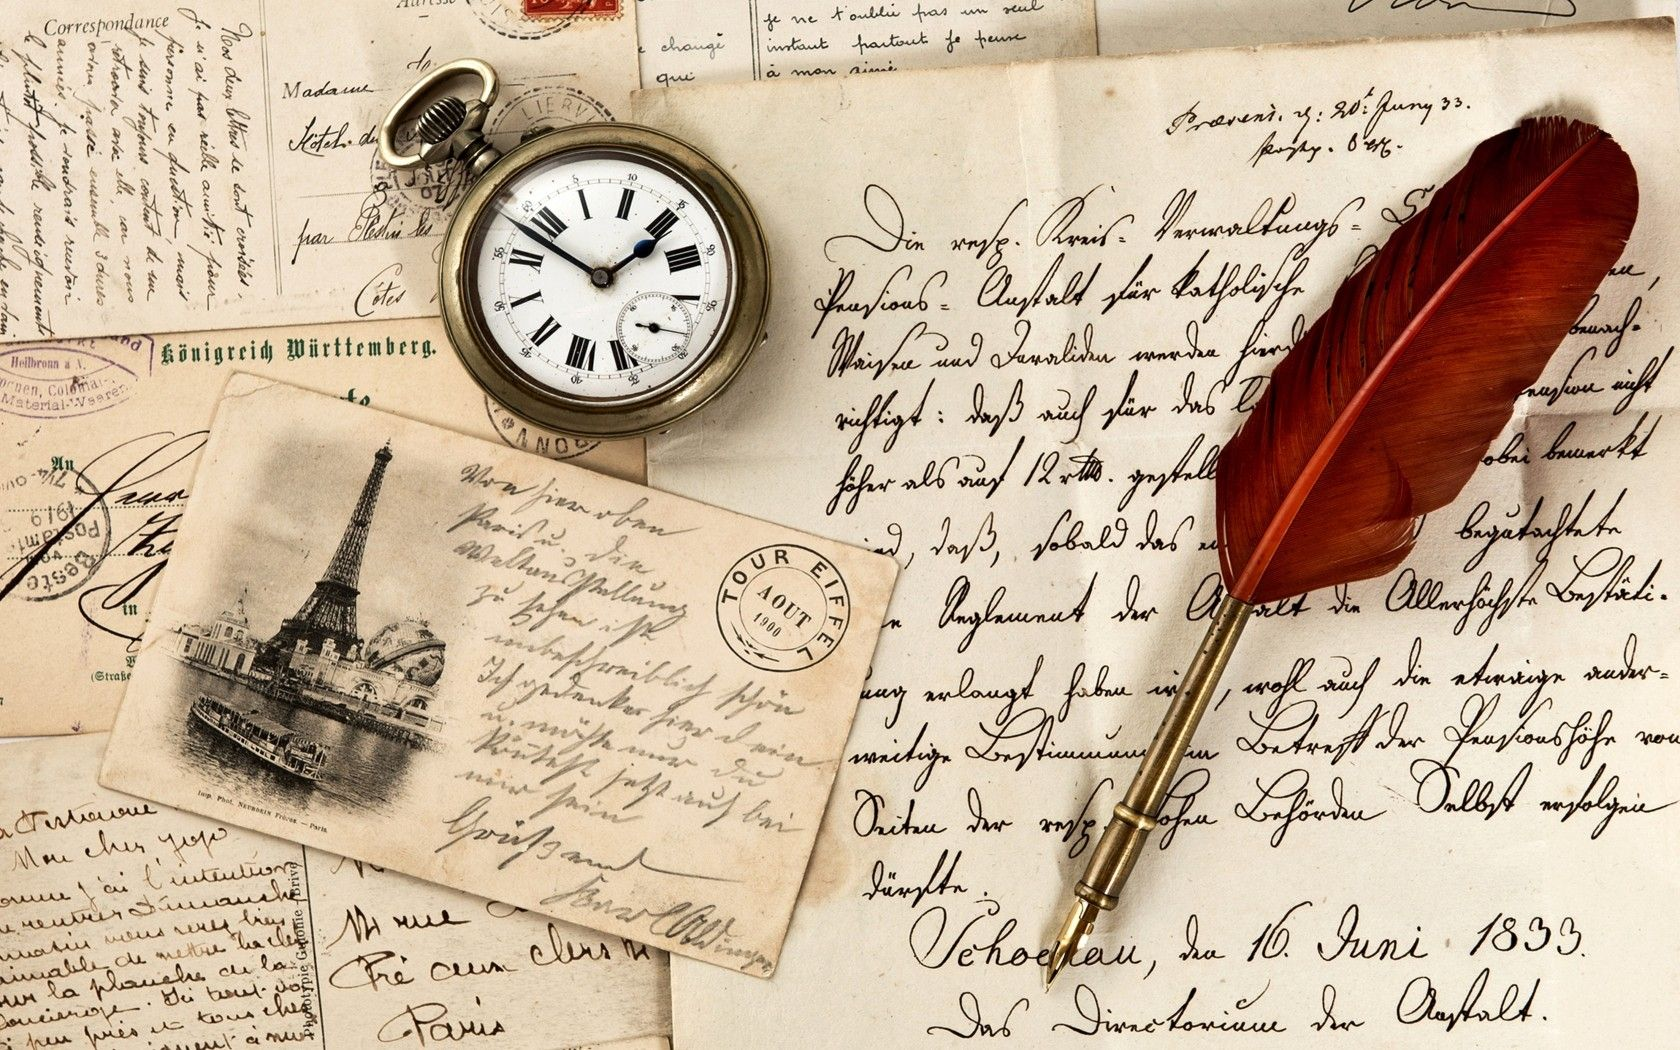 1680x1050 wallpaper vintage old paper pen watch writing stamp 1680x1050 wallpaper vintage old paper pen watch writing stamp postcard altavistaventures Images